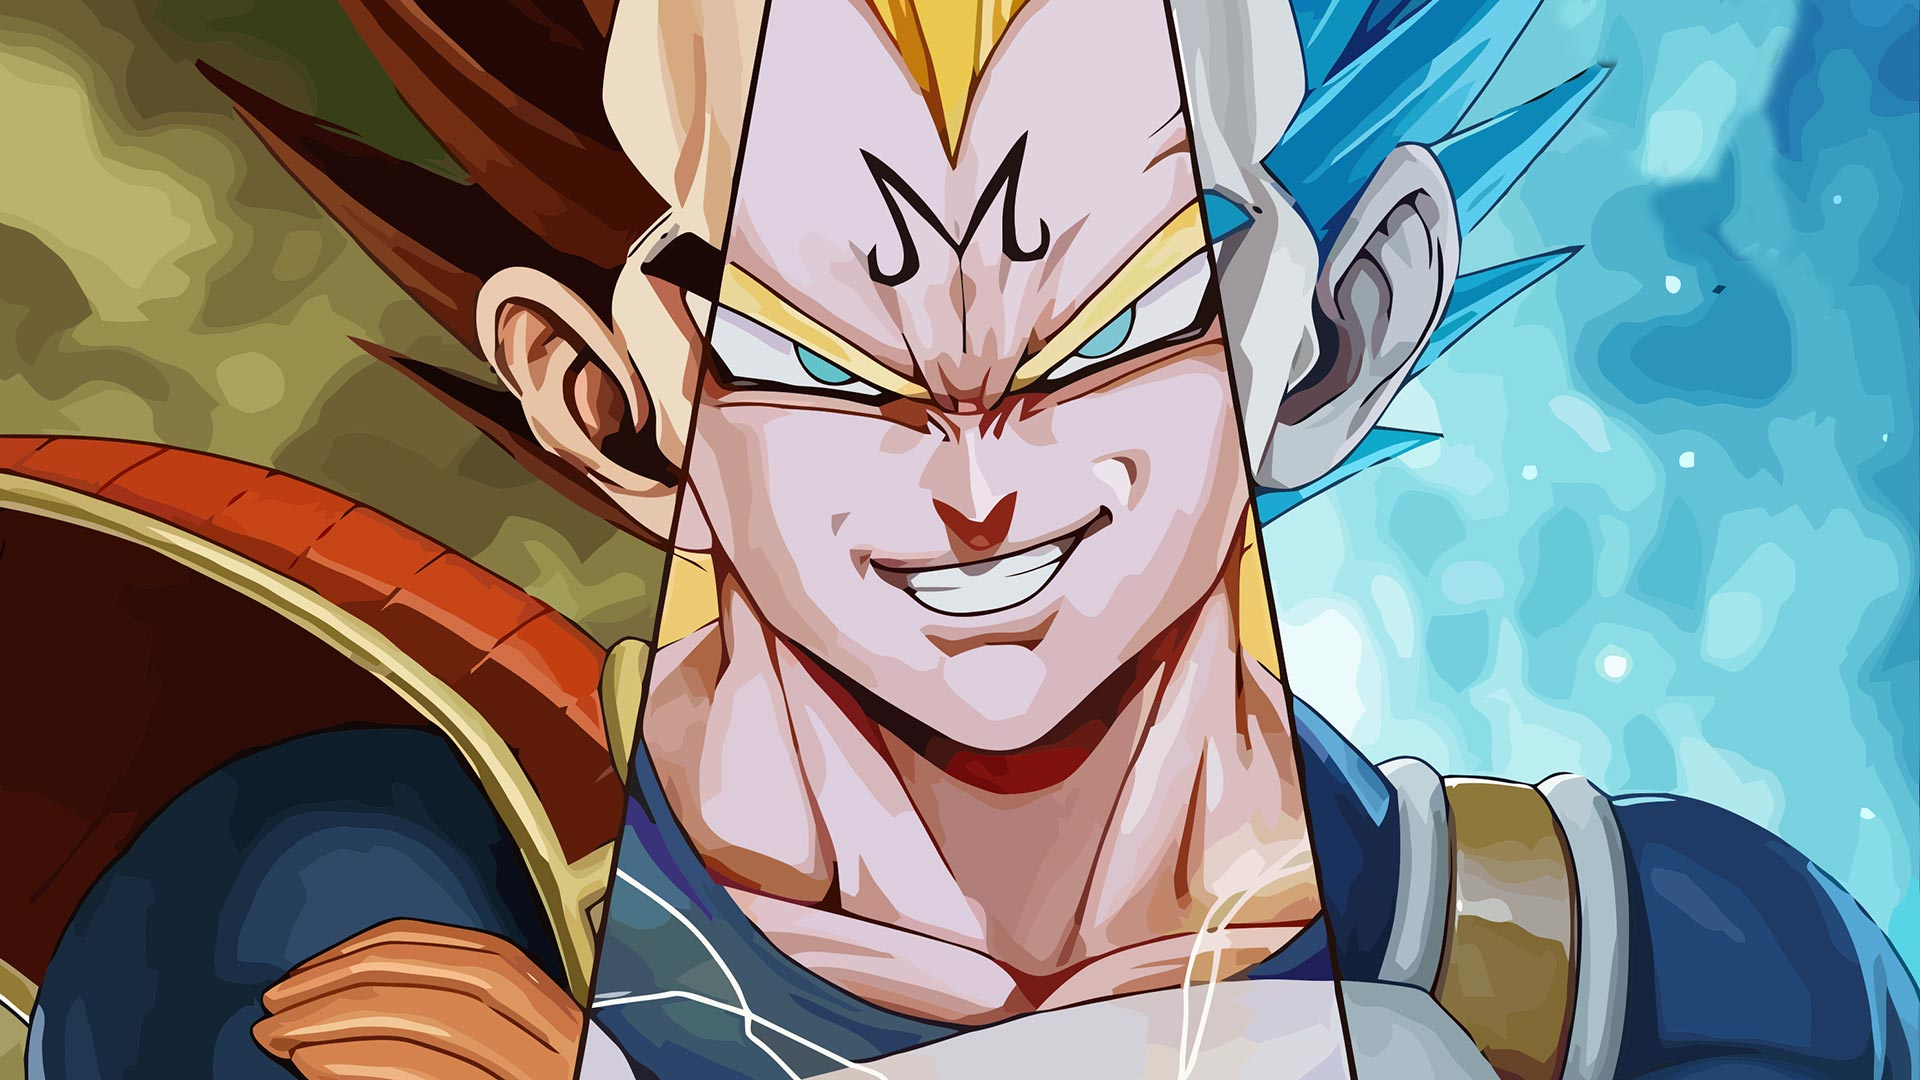 ve as set up in the moro arc should not lead him to ultra instinct but instead be more akin to super saiyan rose transformation